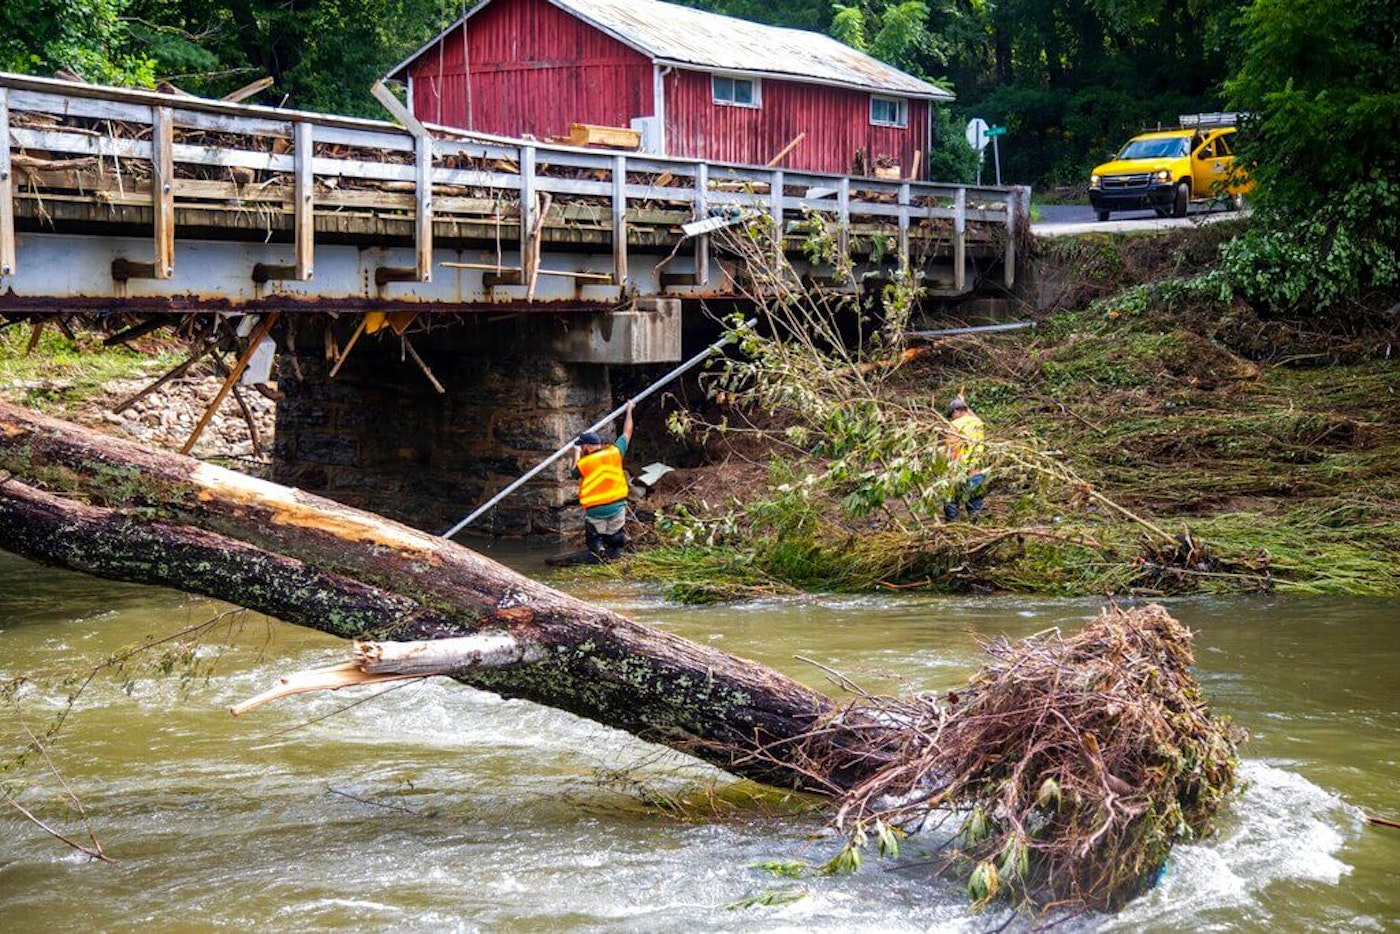 NCDOT workers assess damage to a bridge spanning the Pigeon River, Thursday in Bethel, N.C., (Travis Long/The News & Observer via AP)